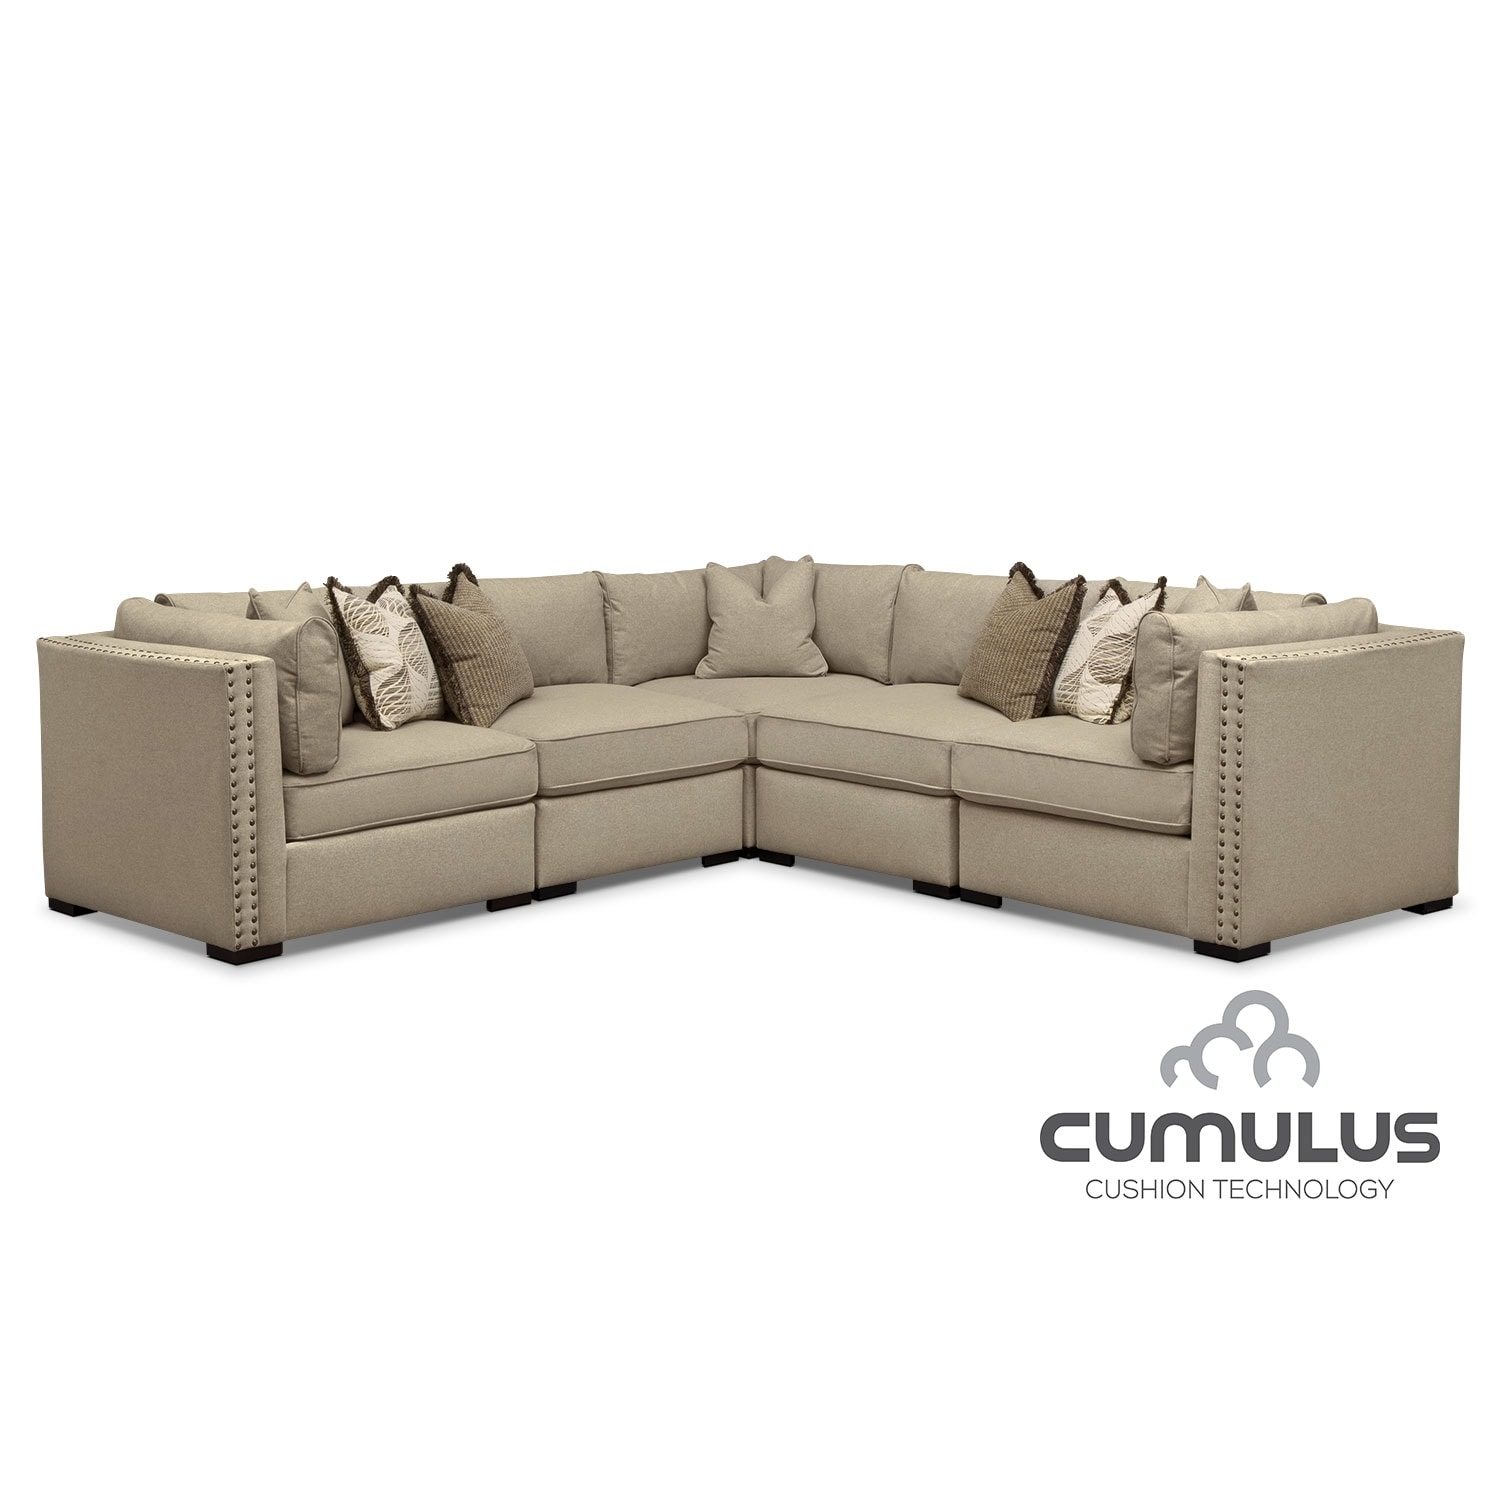 [Athens 5 Pc. Sectional]